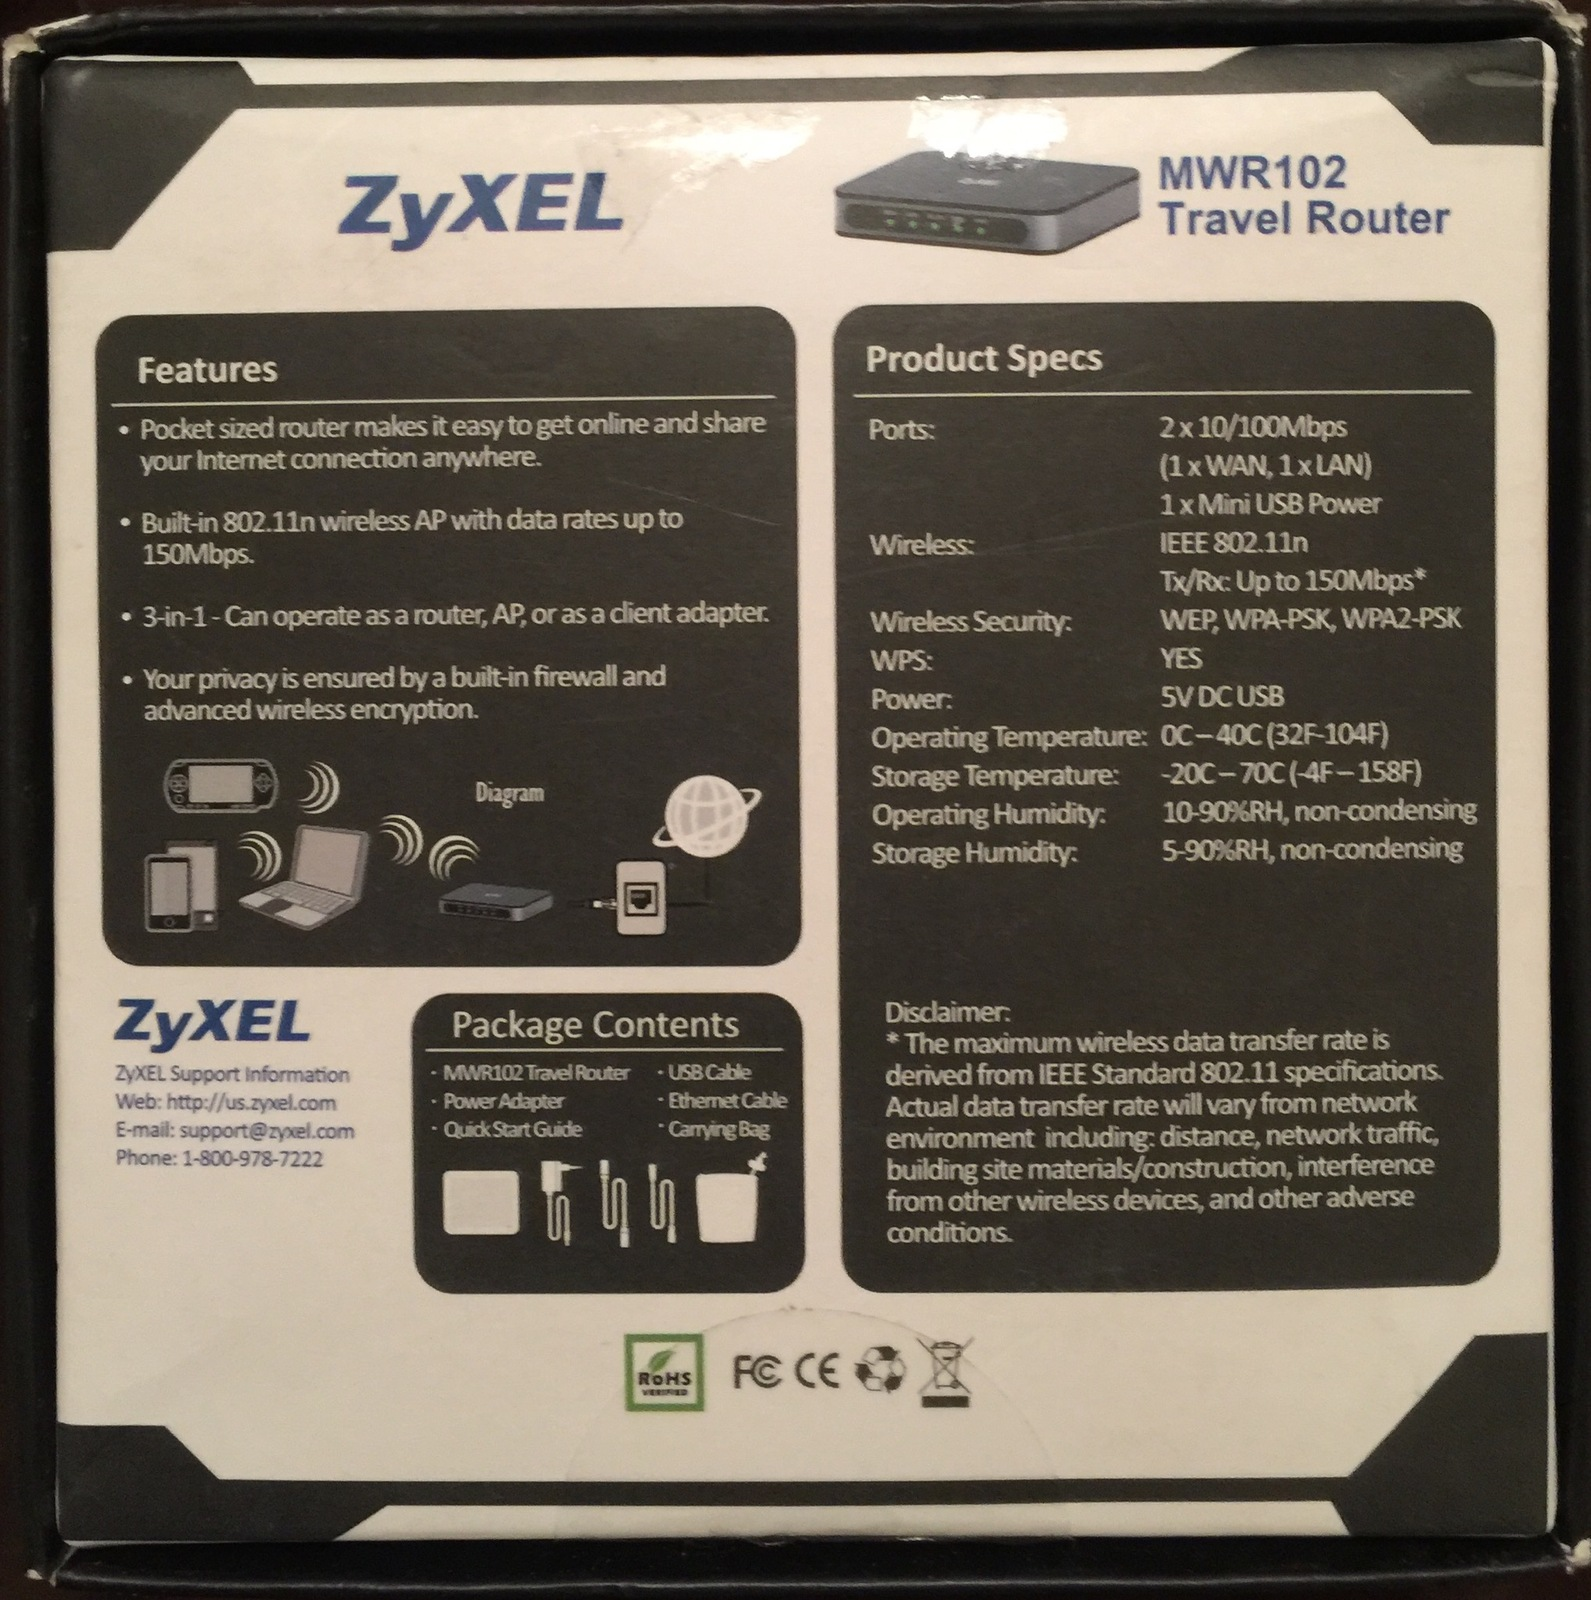 ZyXEL Wireless Pocket Router [MWR102] and 50 similar items